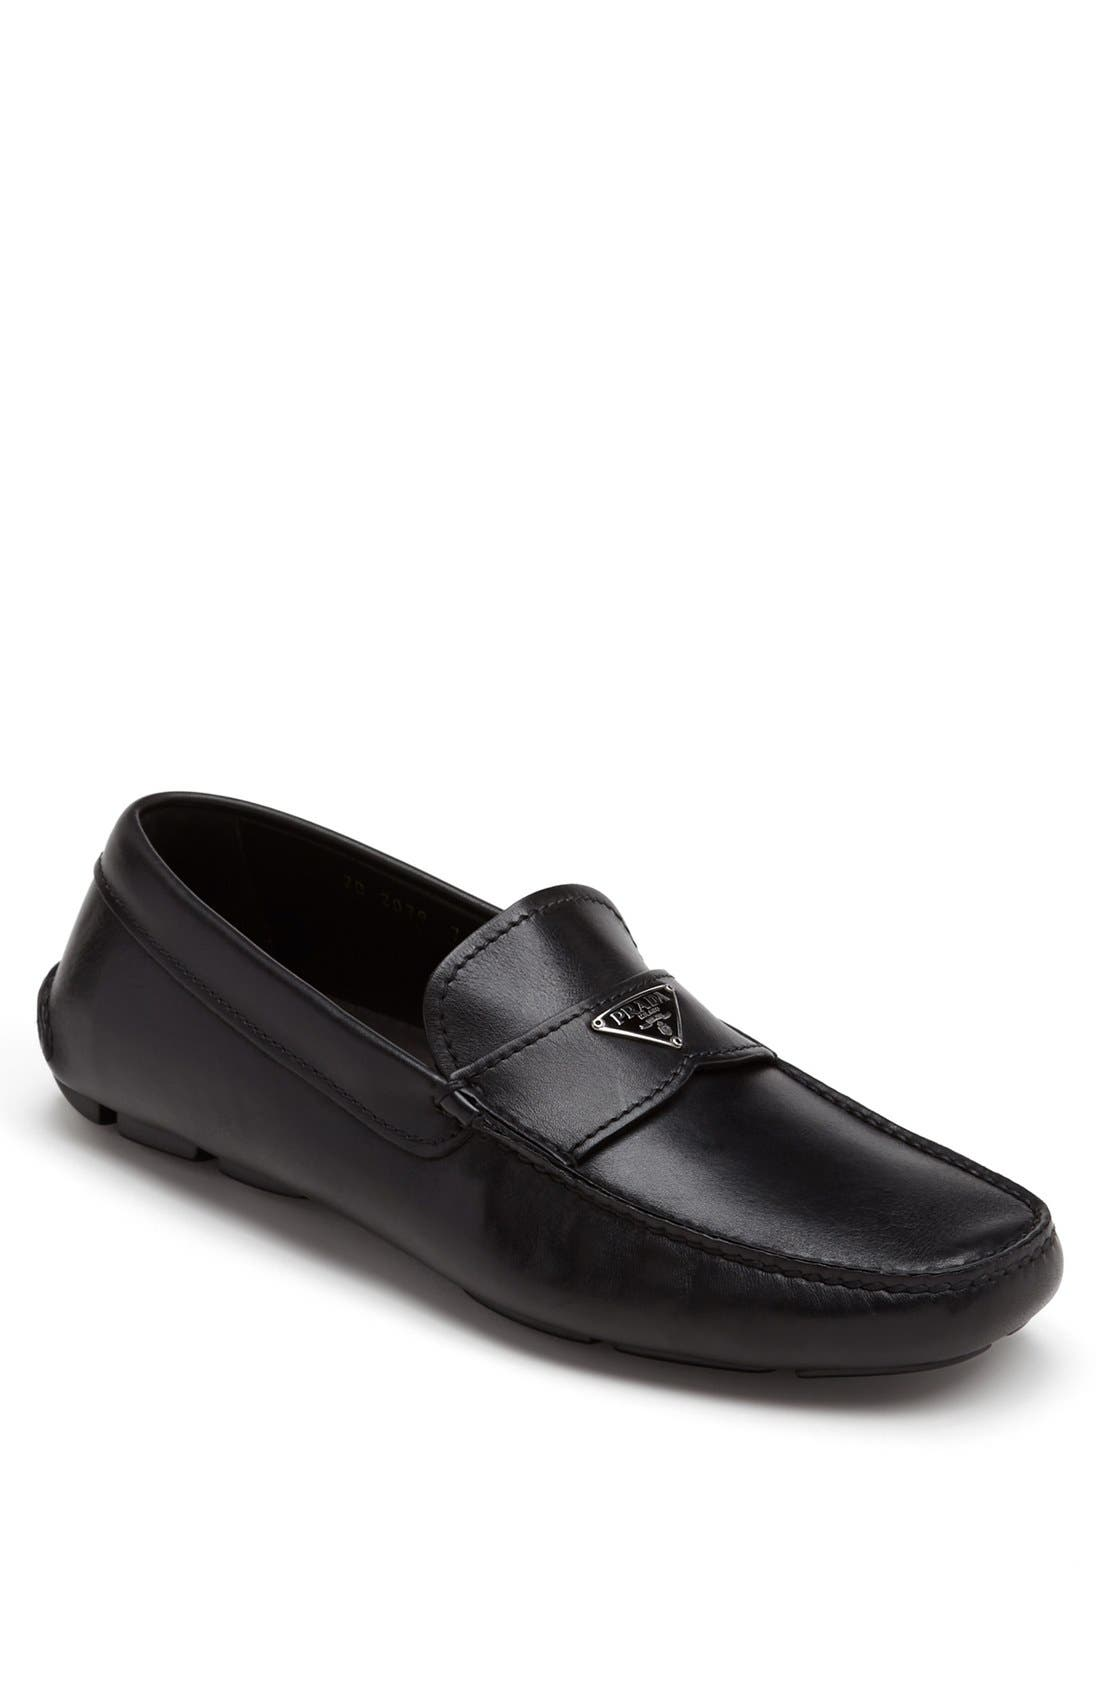 Alternate Image 1 Selected - Prada Logo Bit Driving Shoe (Men)